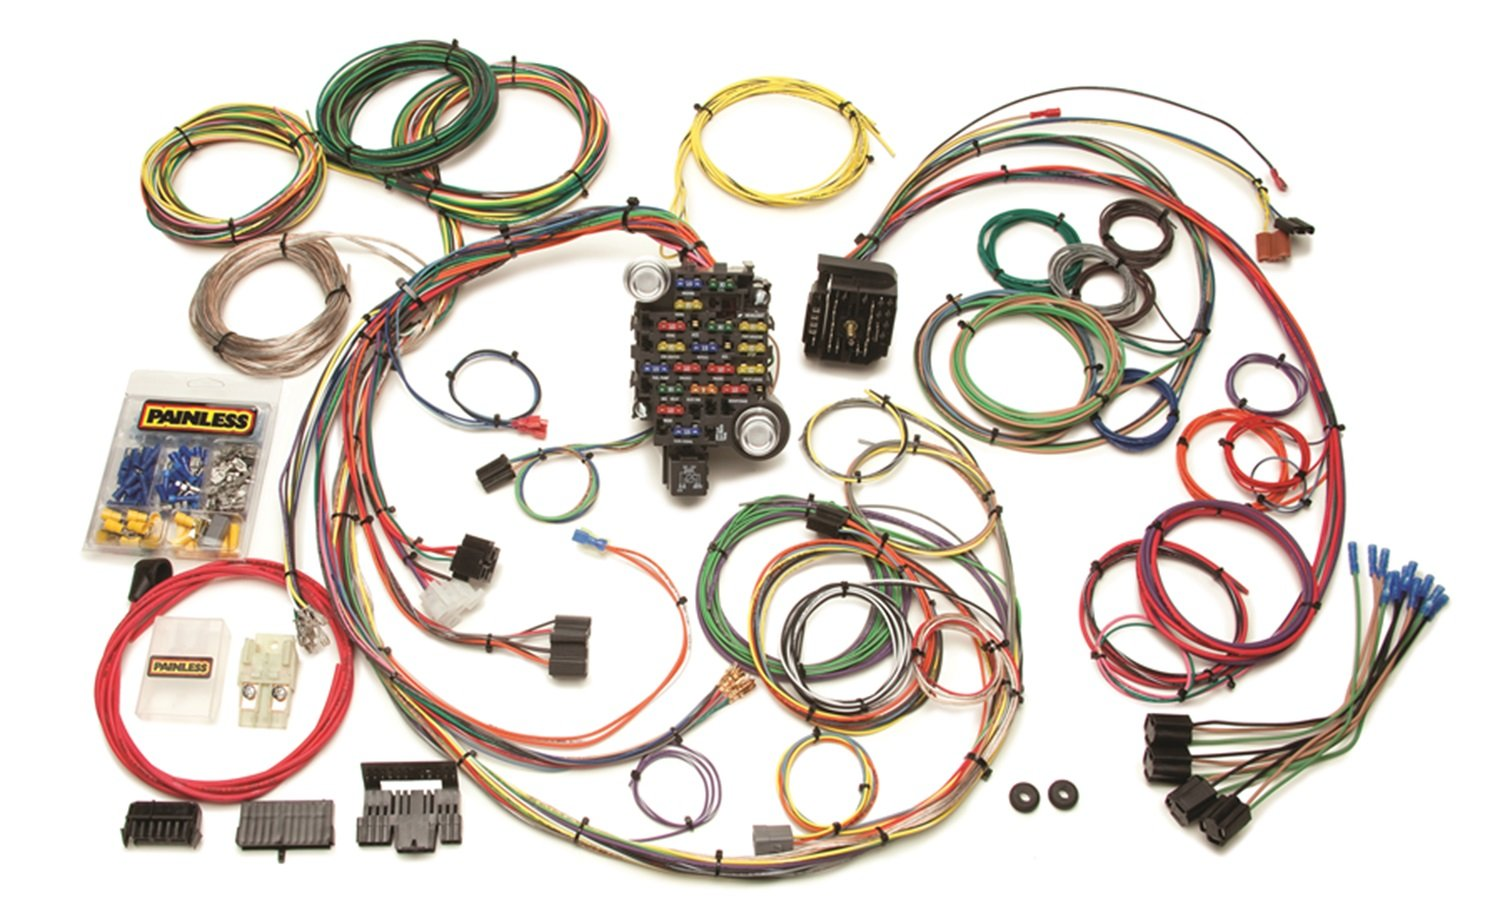 Amazon.com: Painless 20102 Custom Wiring Harness: Automotive